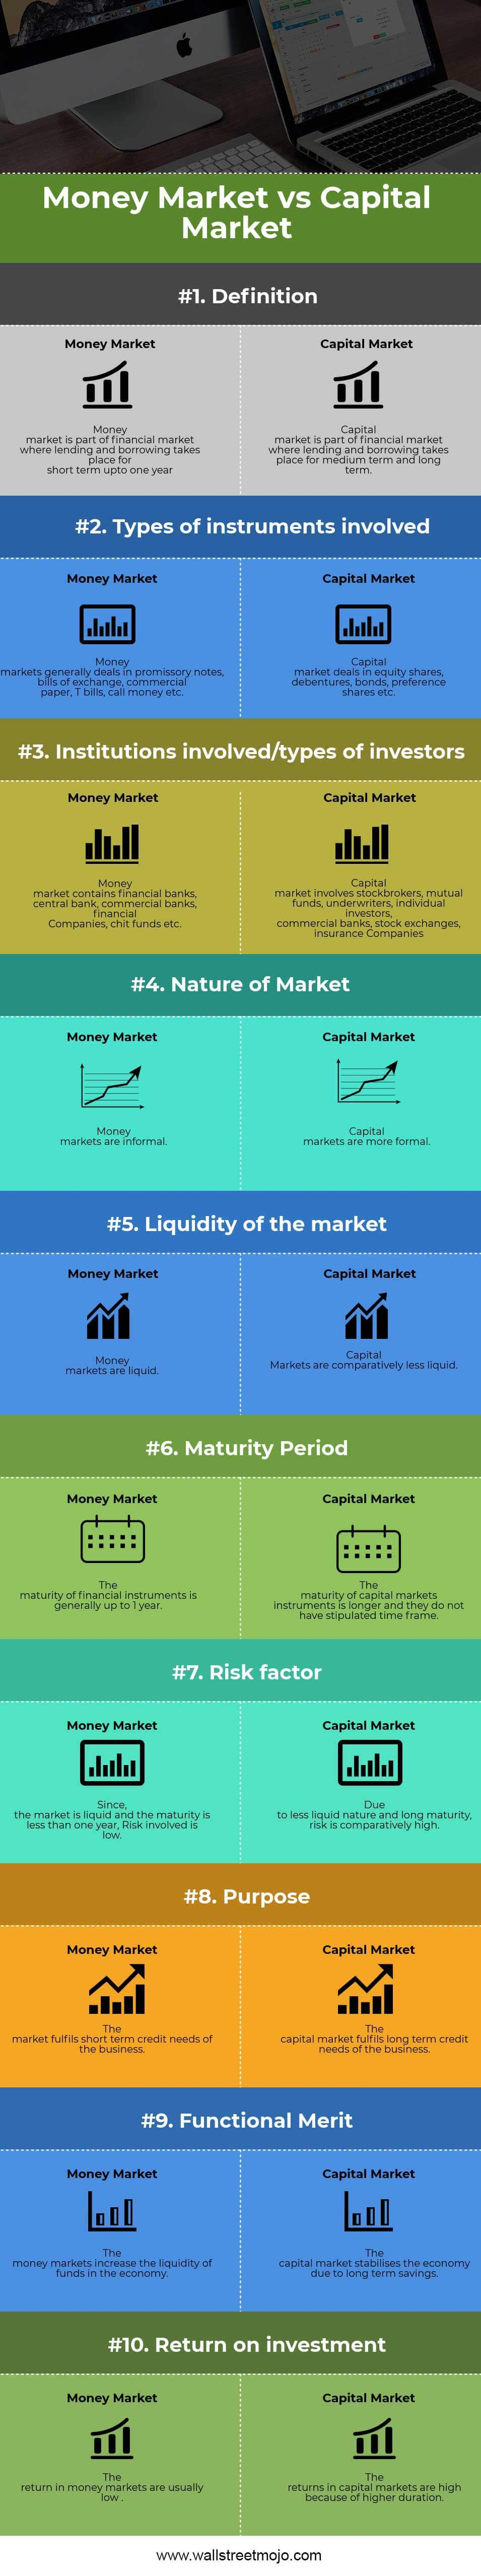 Money-Market-vs-Capital-Market